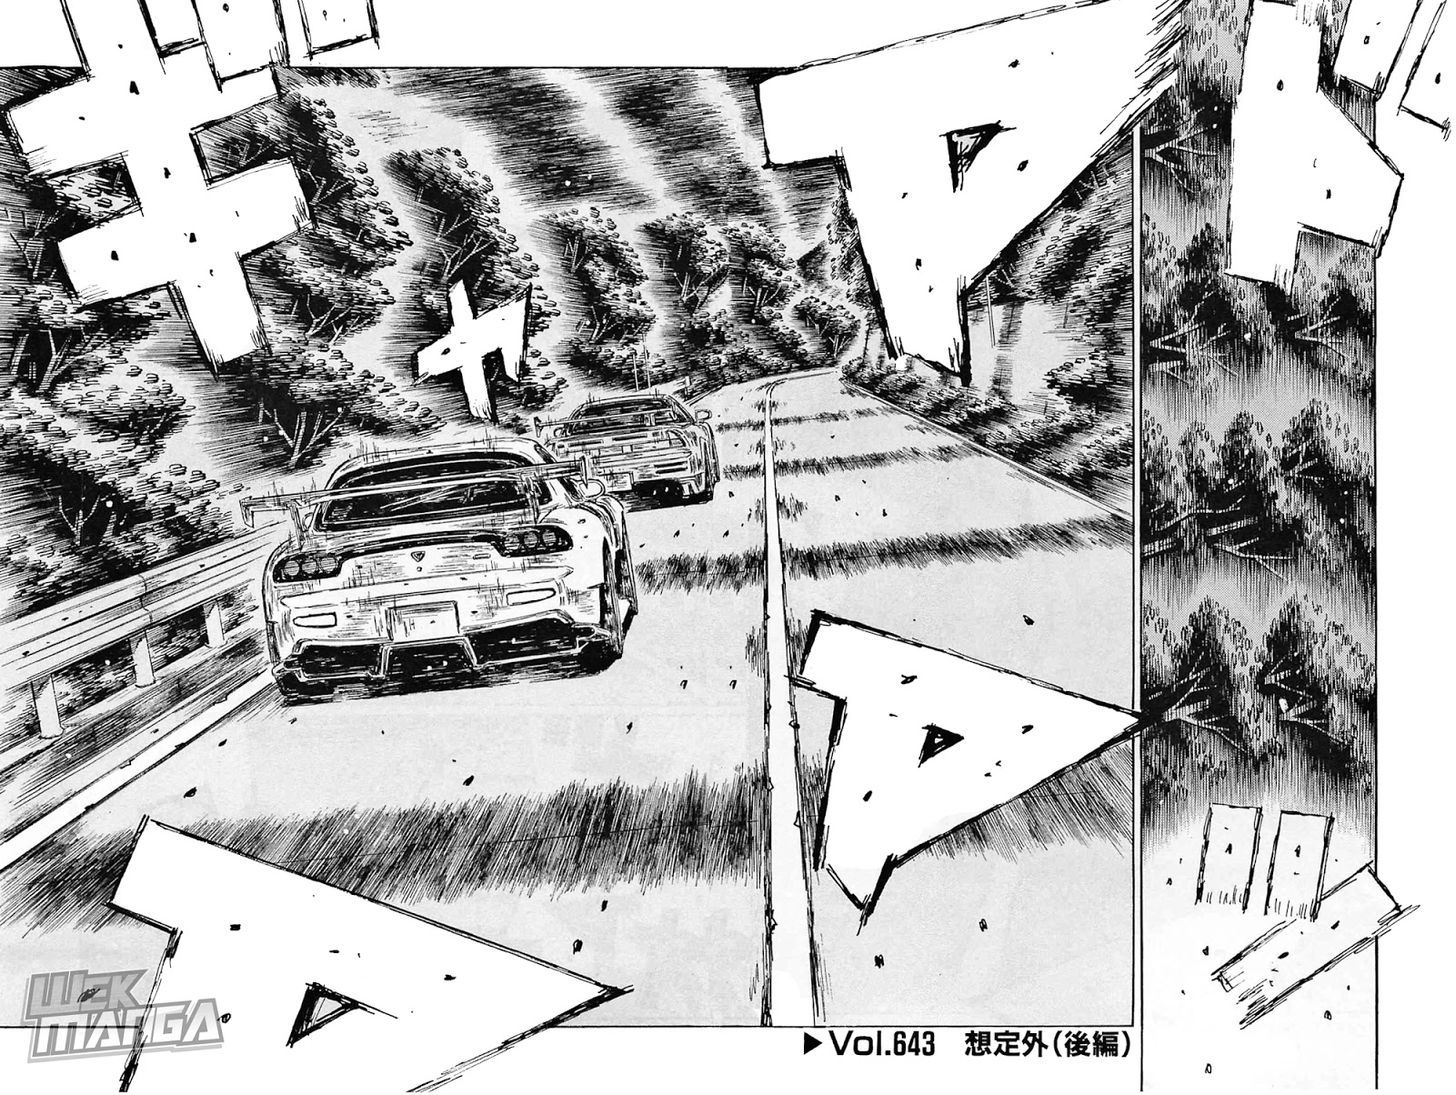 http://im.nineanime.com/comics/pic9/61/2493/61319/InitialD6430499.jpg Page 1